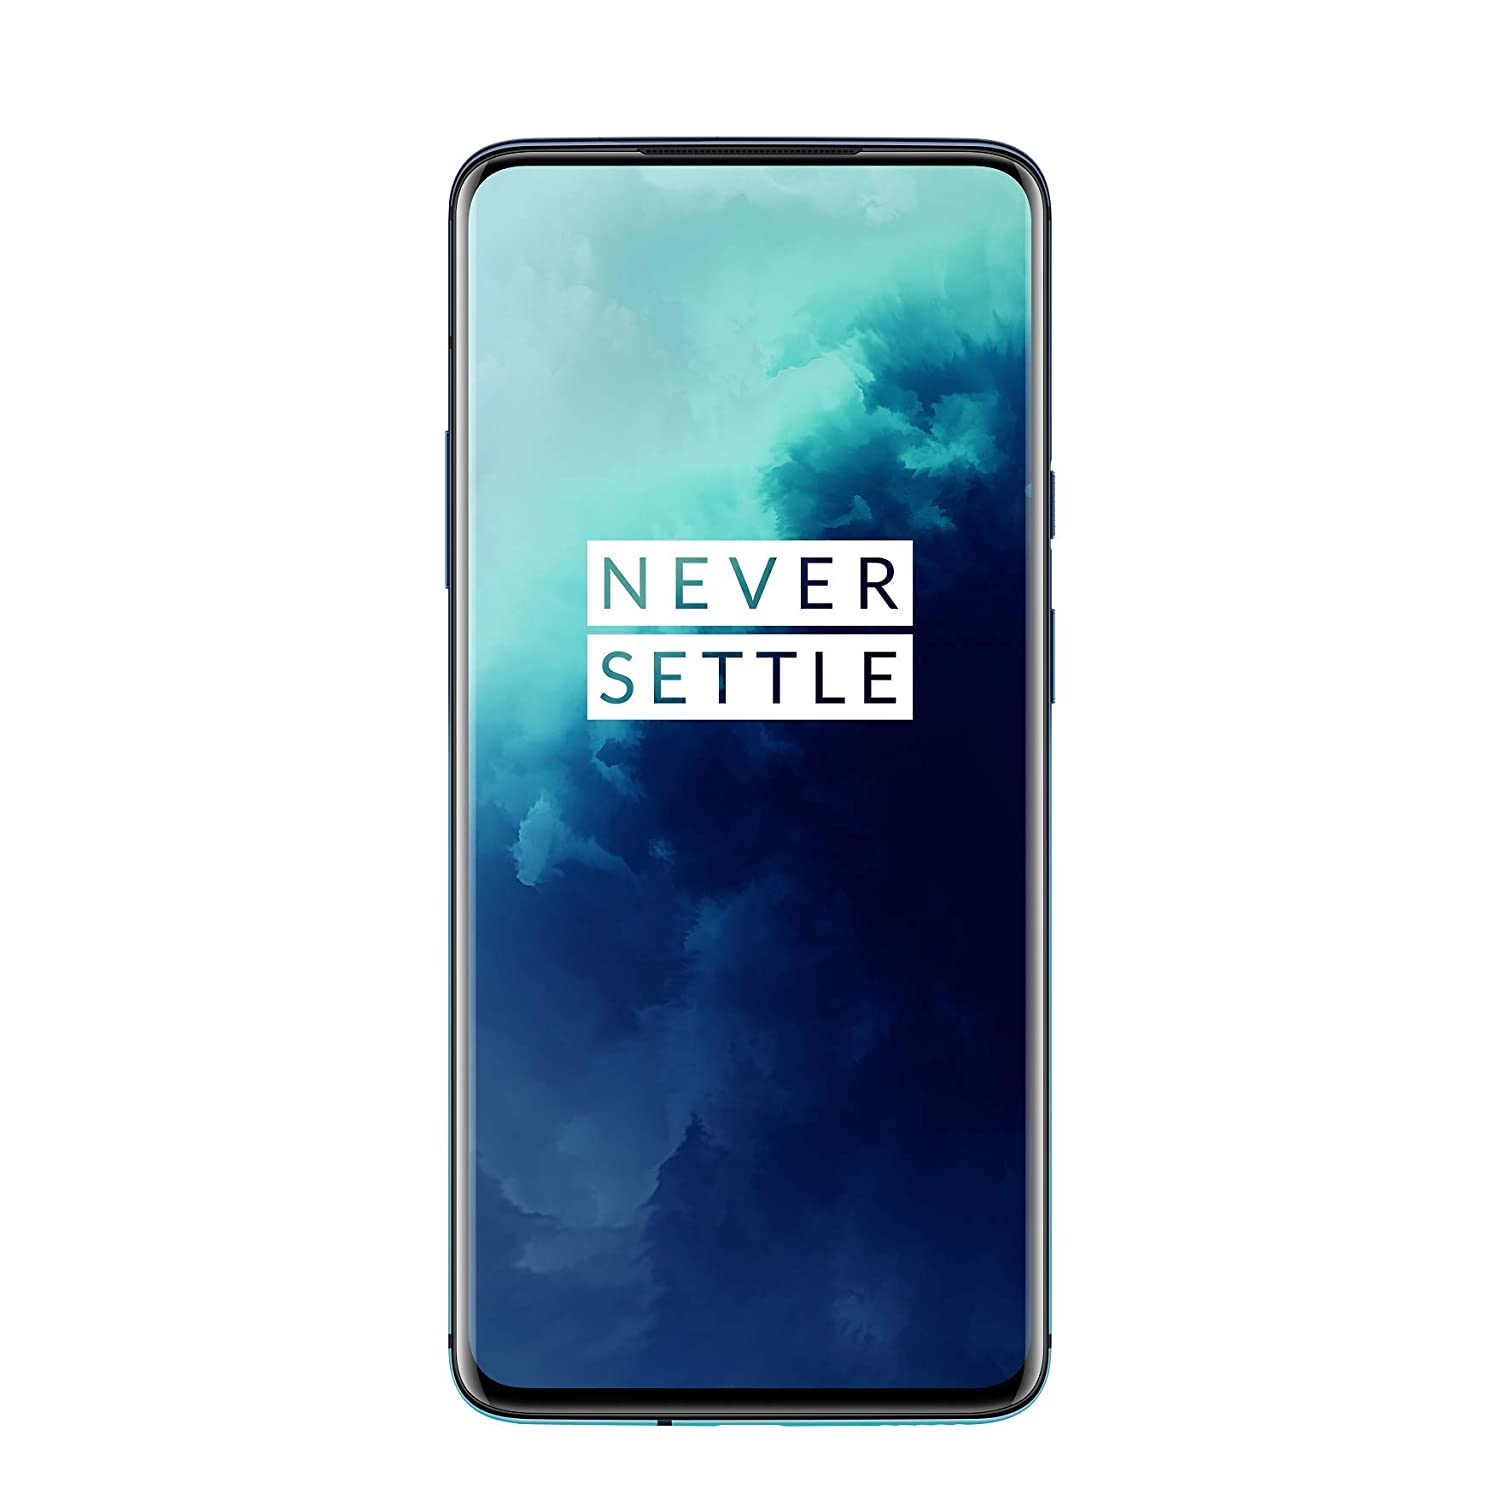 OnePlus 7T Pro (Haze Blue, 8GB RAM, Fluid AMOLED Display, 256GB Storage, 4085mAH Battery)